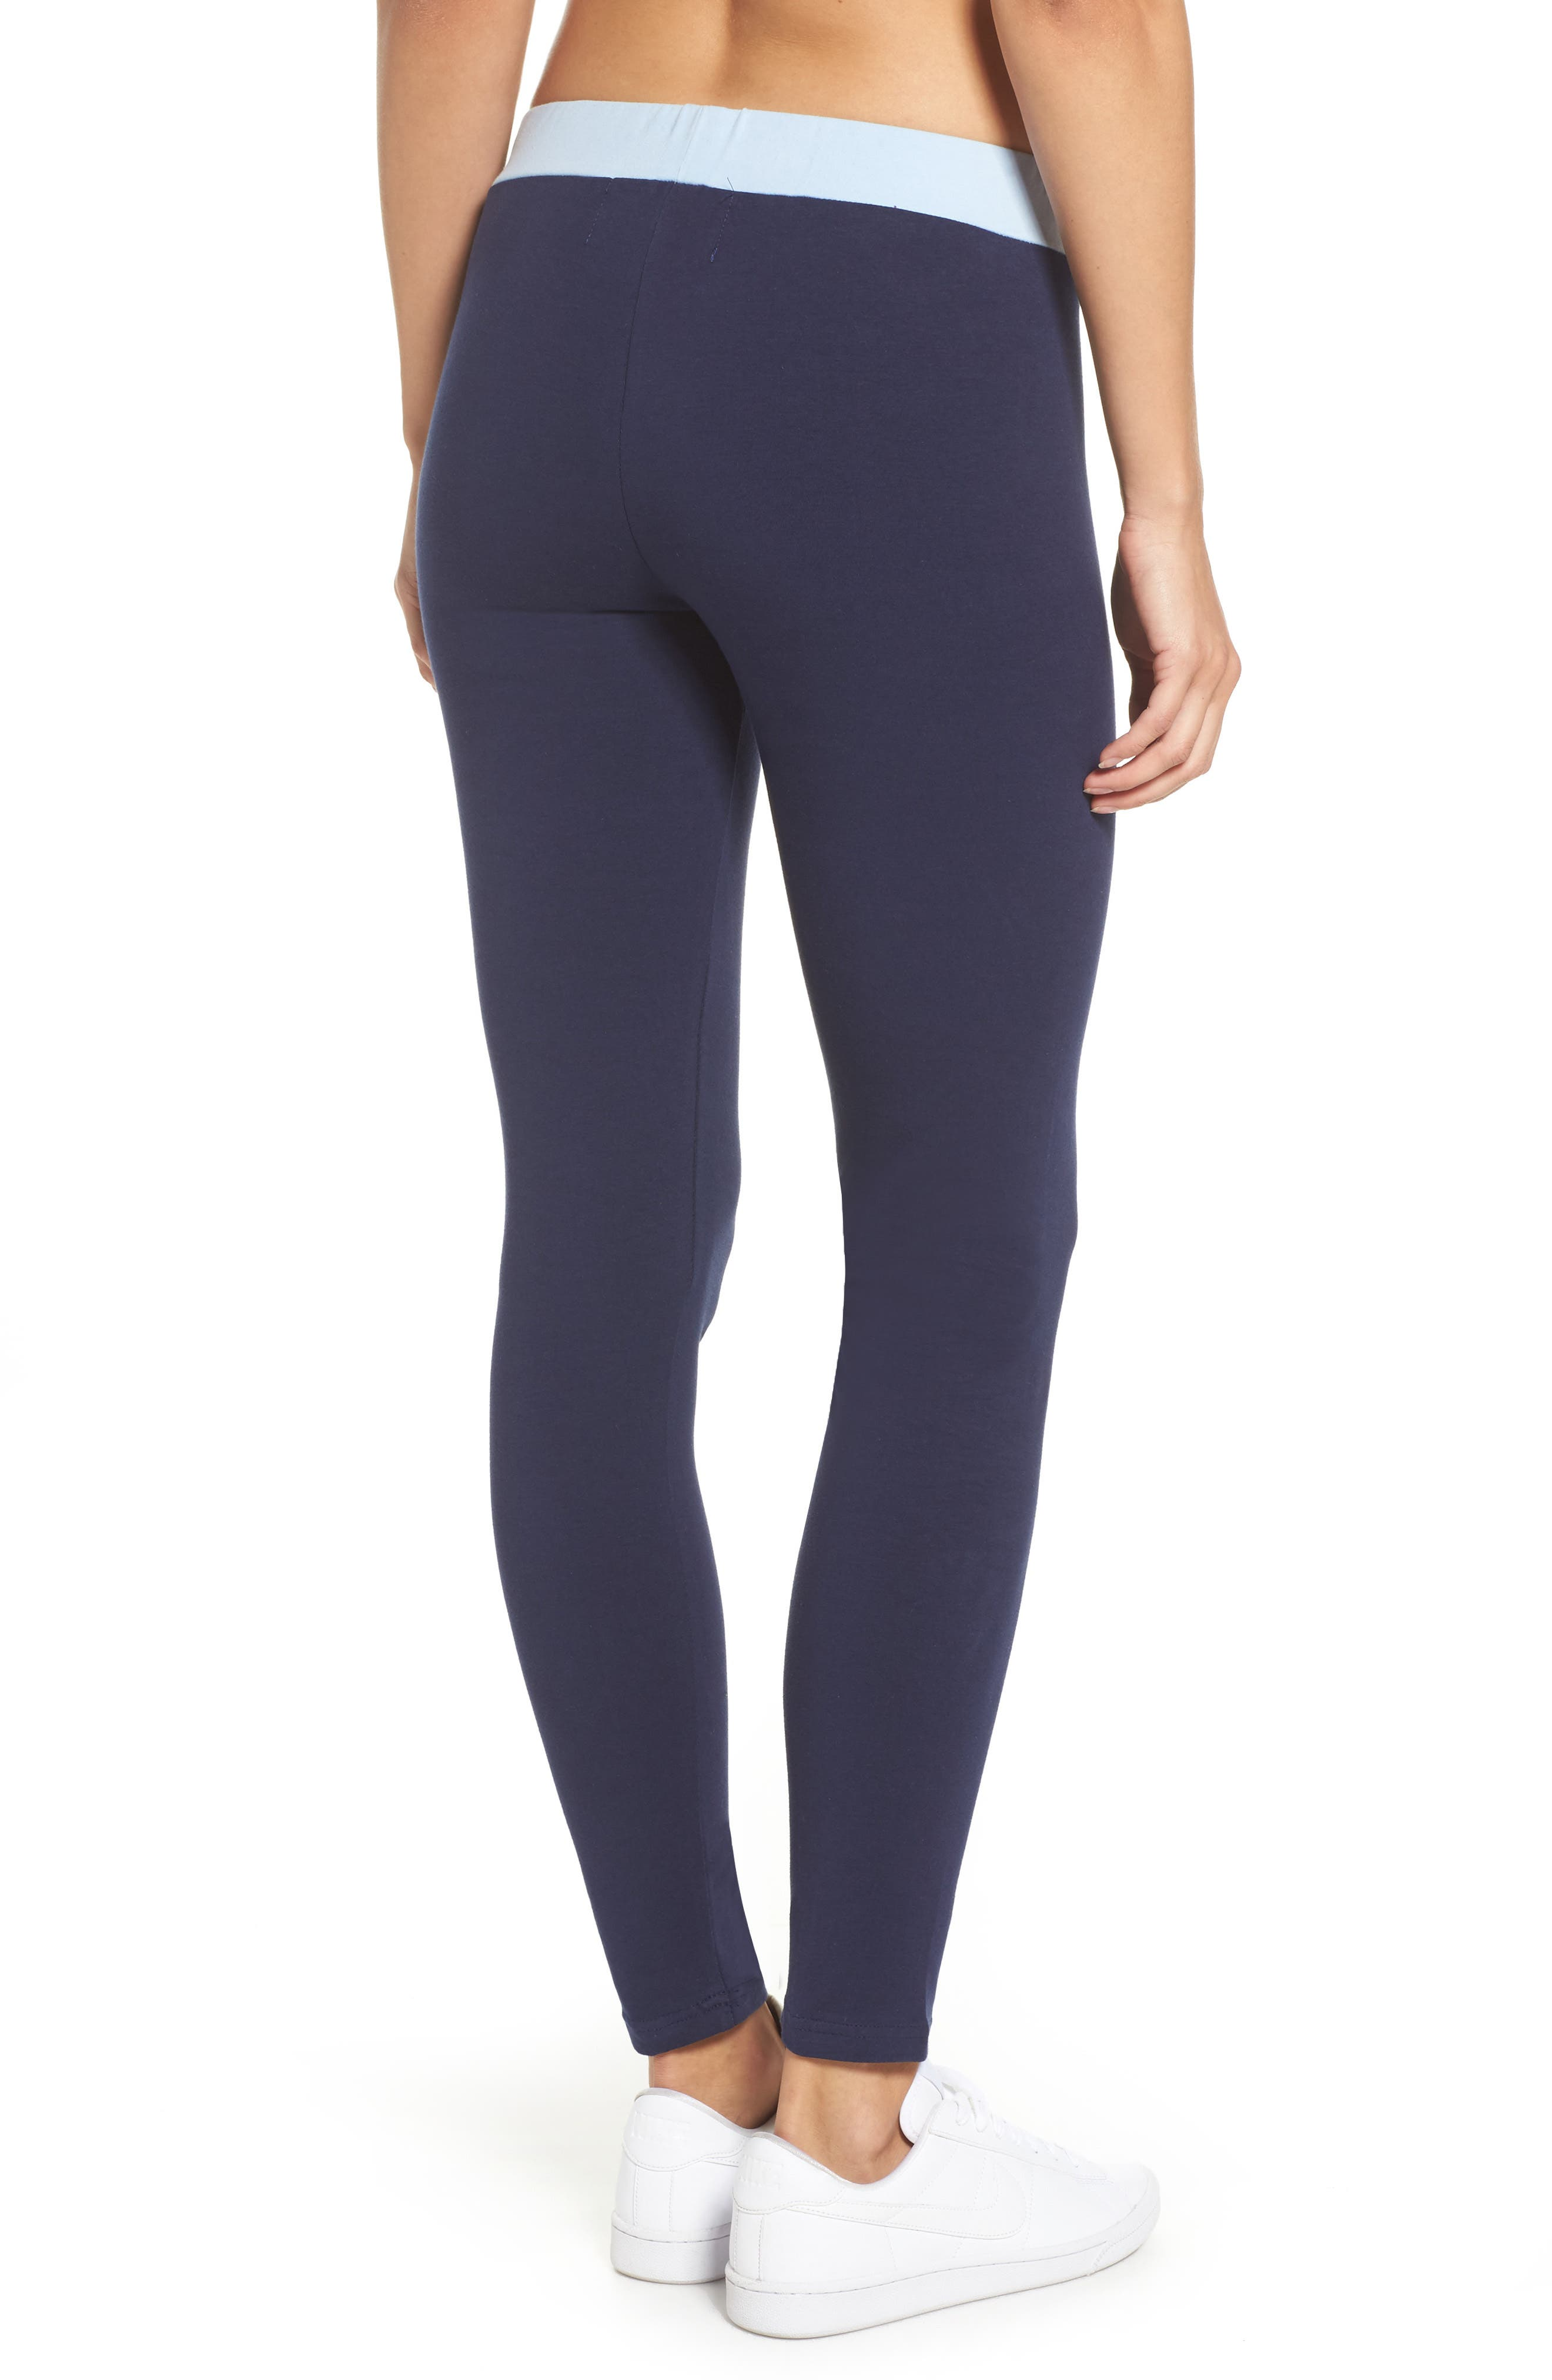 Imelda Training Tights,                             Alternate thumbnail 2, color,                             Navy/ Skyway/ Rio Red